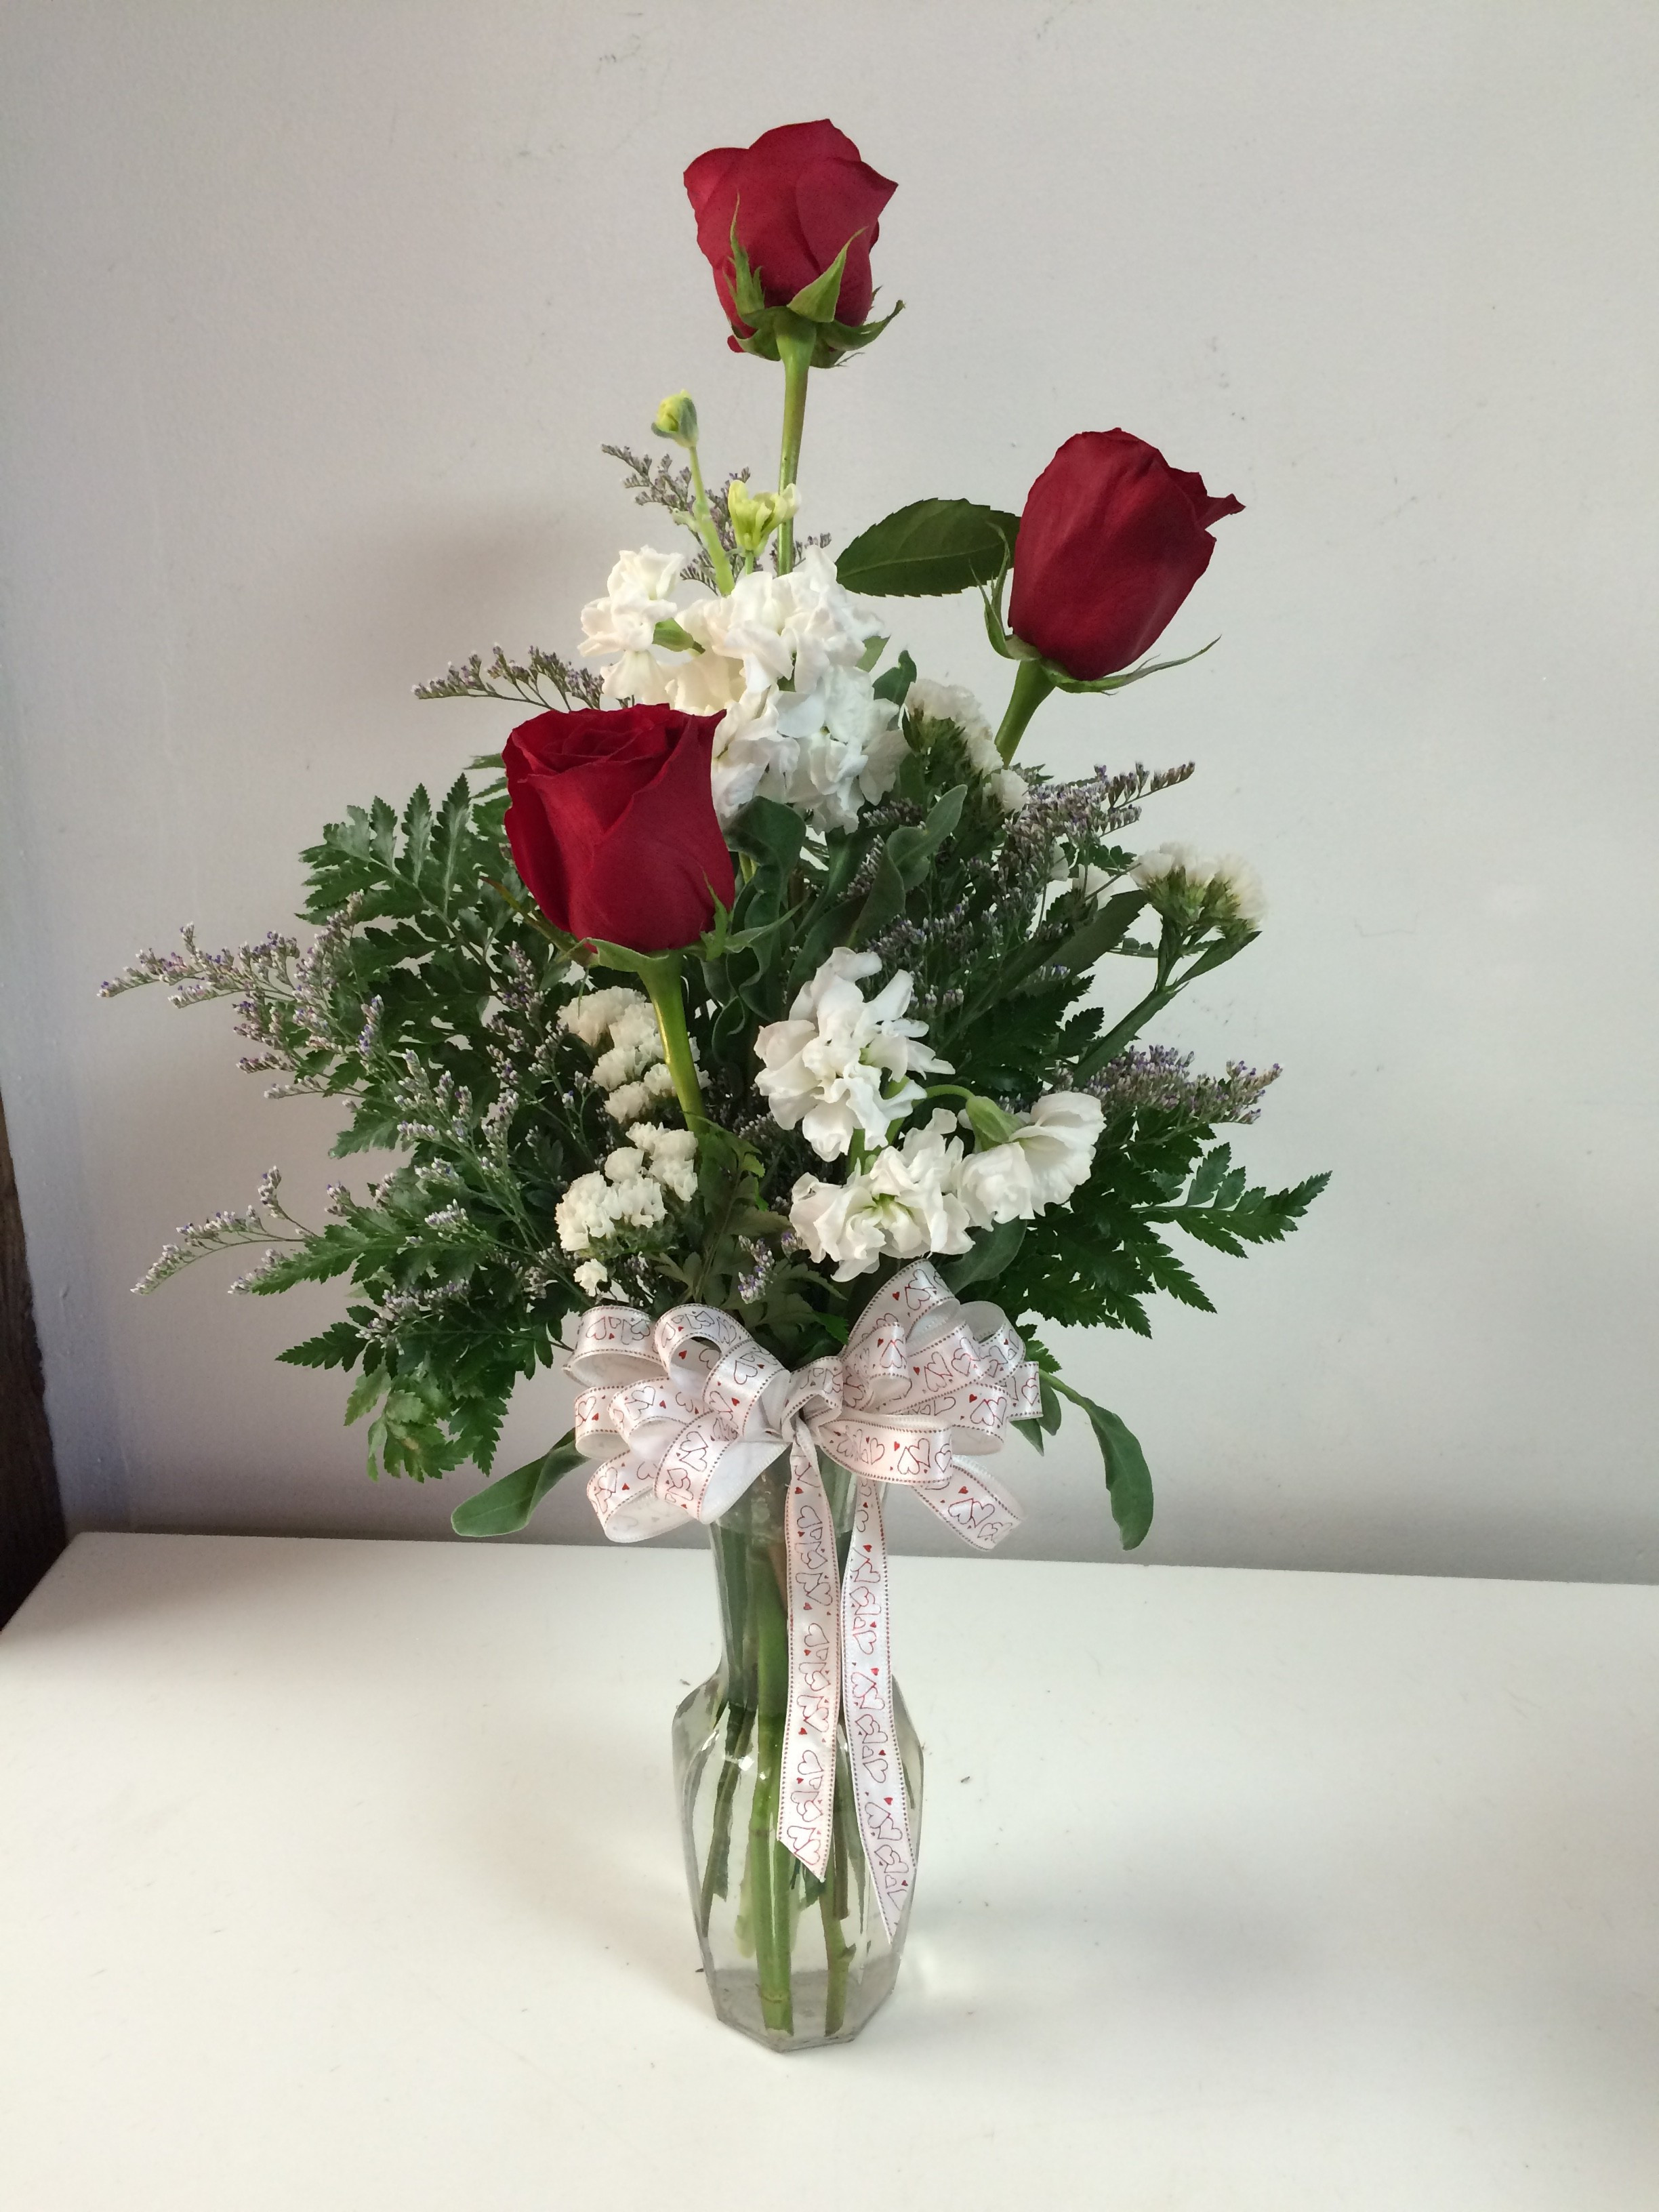 Rose Gold Vases with Flowers Of Elk City Florist Flower Delivery by Broadway Flowers Pertaining to Triple Roses